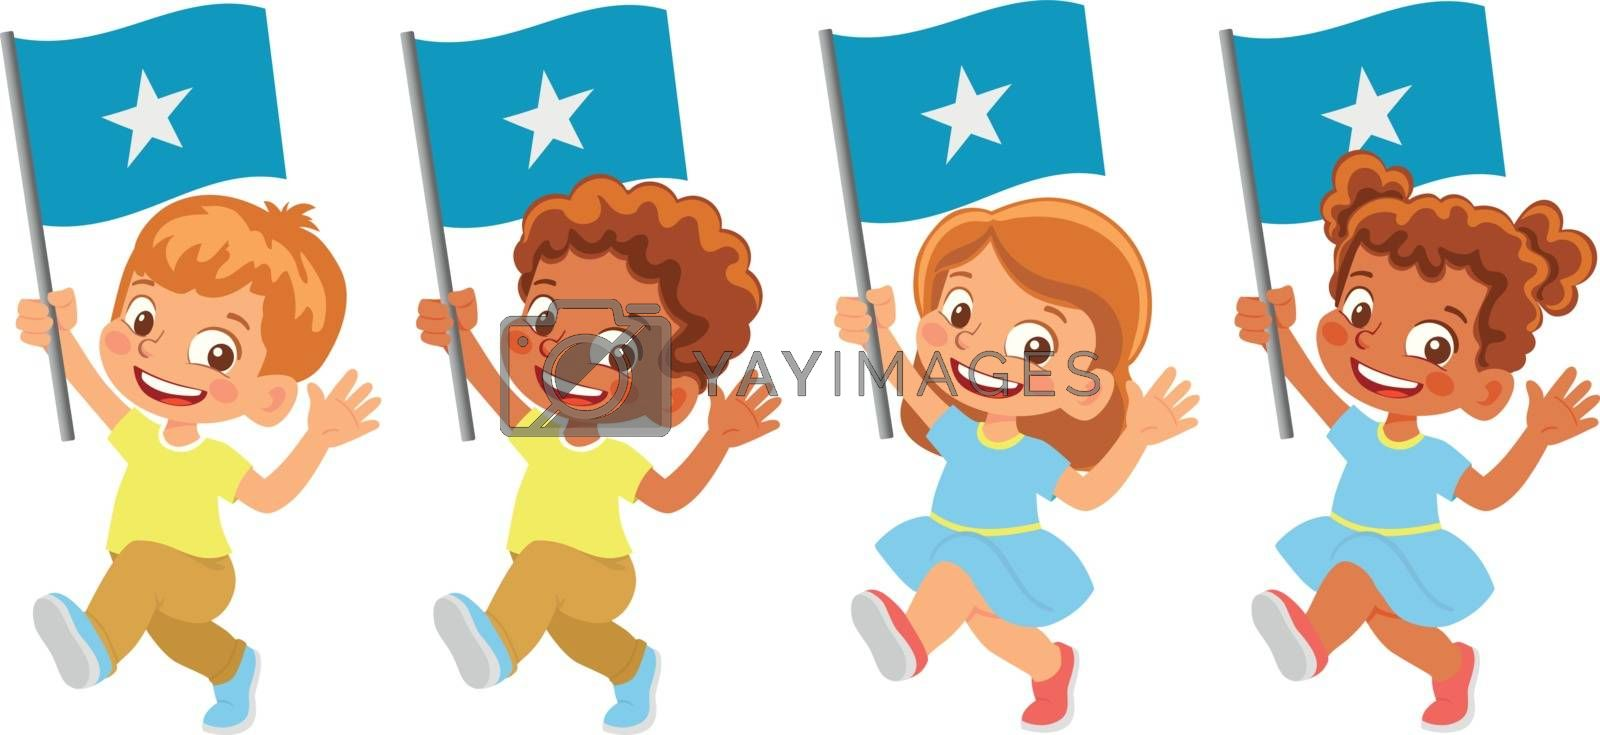 Somalia flag in hand. Children holding flag. National flag of Somalia vector